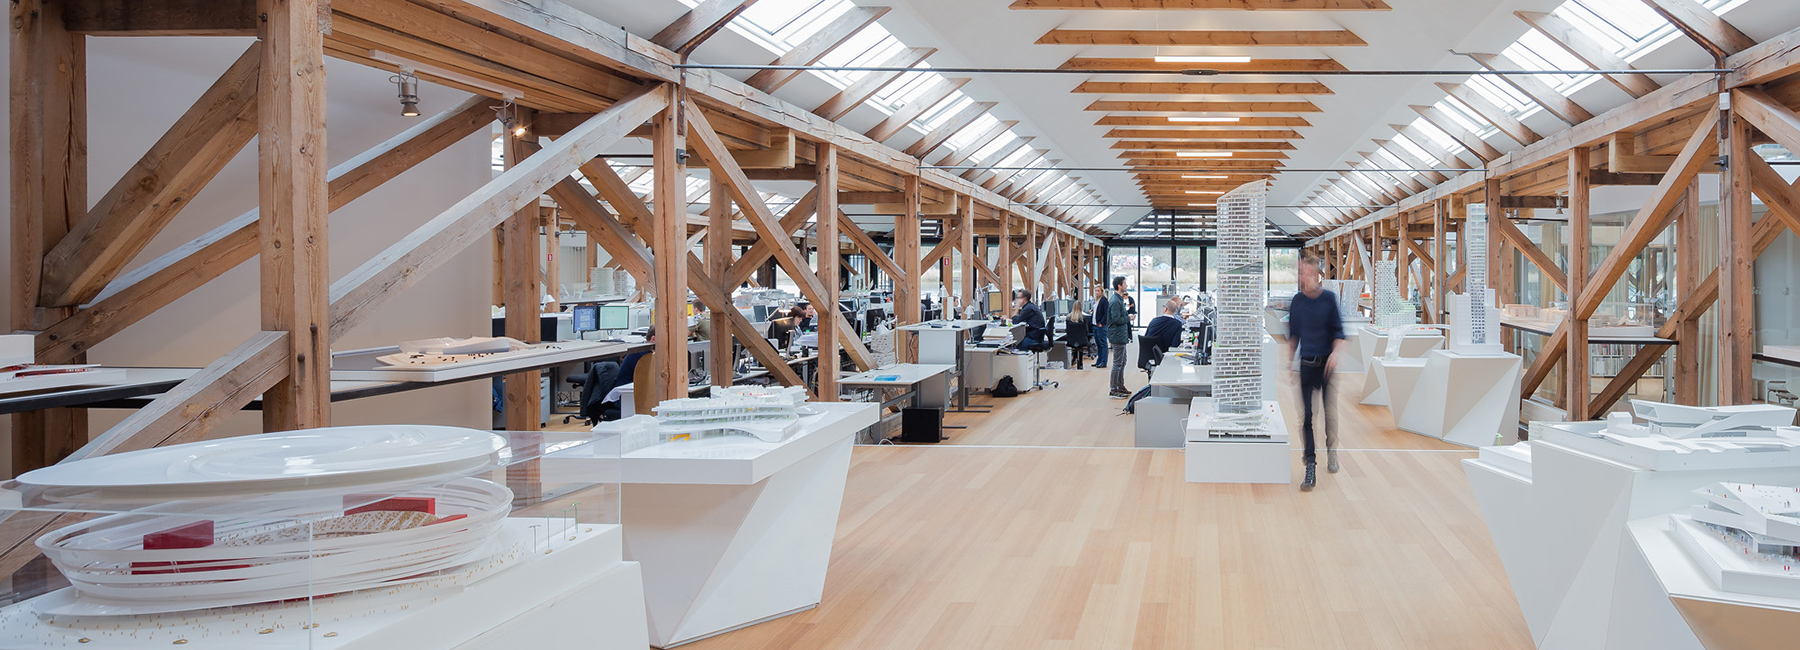 An inside look at the offices of Zaha Hadid, Renzo Piano, and more